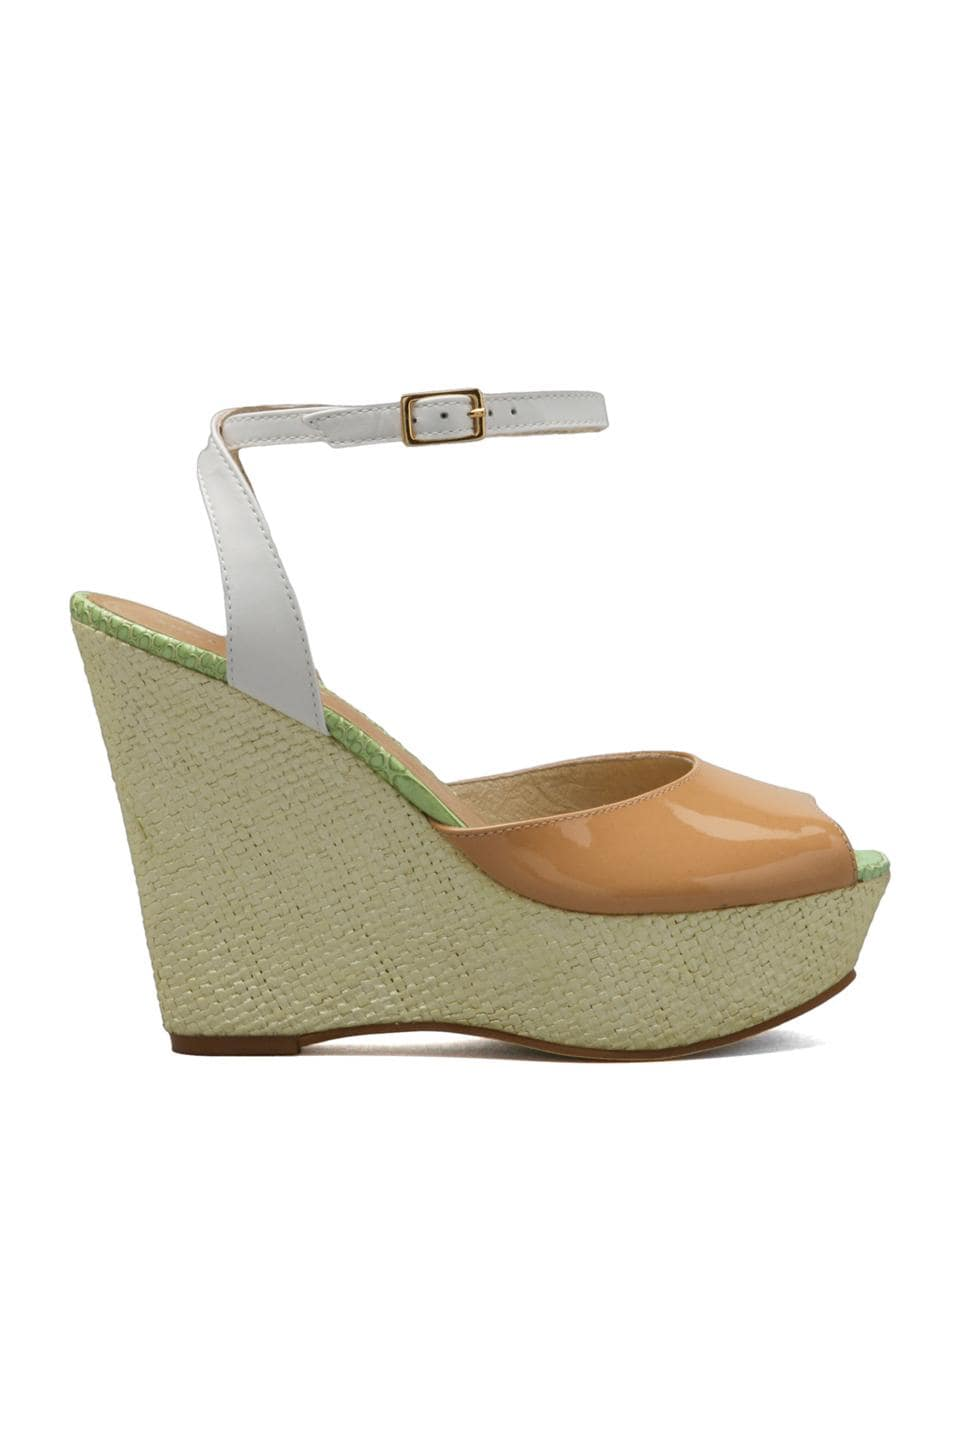 Juicy Couture Dafne Wedge in Natural/White